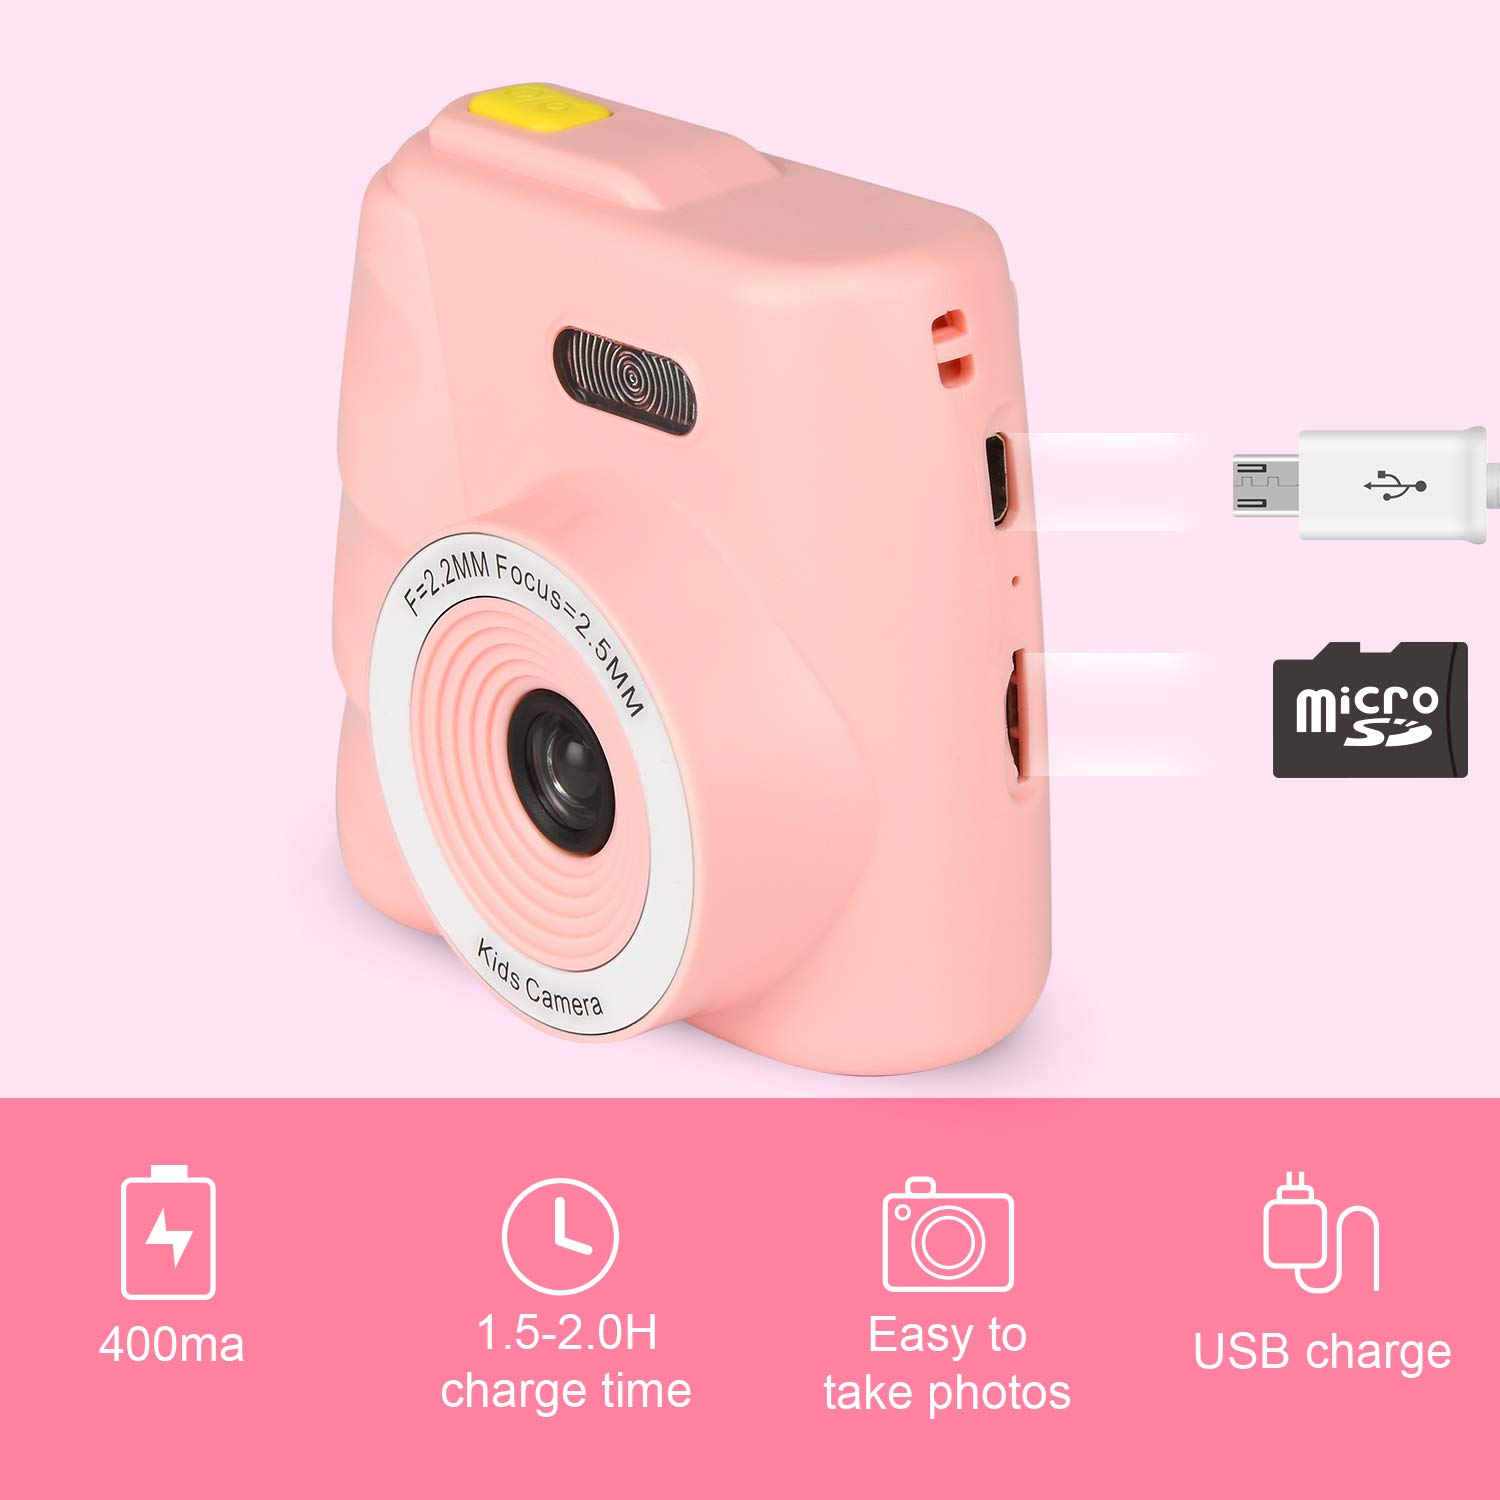 Kids Camera Gifts for 4-8 Year Old boys or girls, Great Gift Mini Child Camcorder for children with Soft Silicone Shell and 5 Mega pixel front lens 2.0 inch HD screen (32G TF card not included) by eyesen (Image #3)